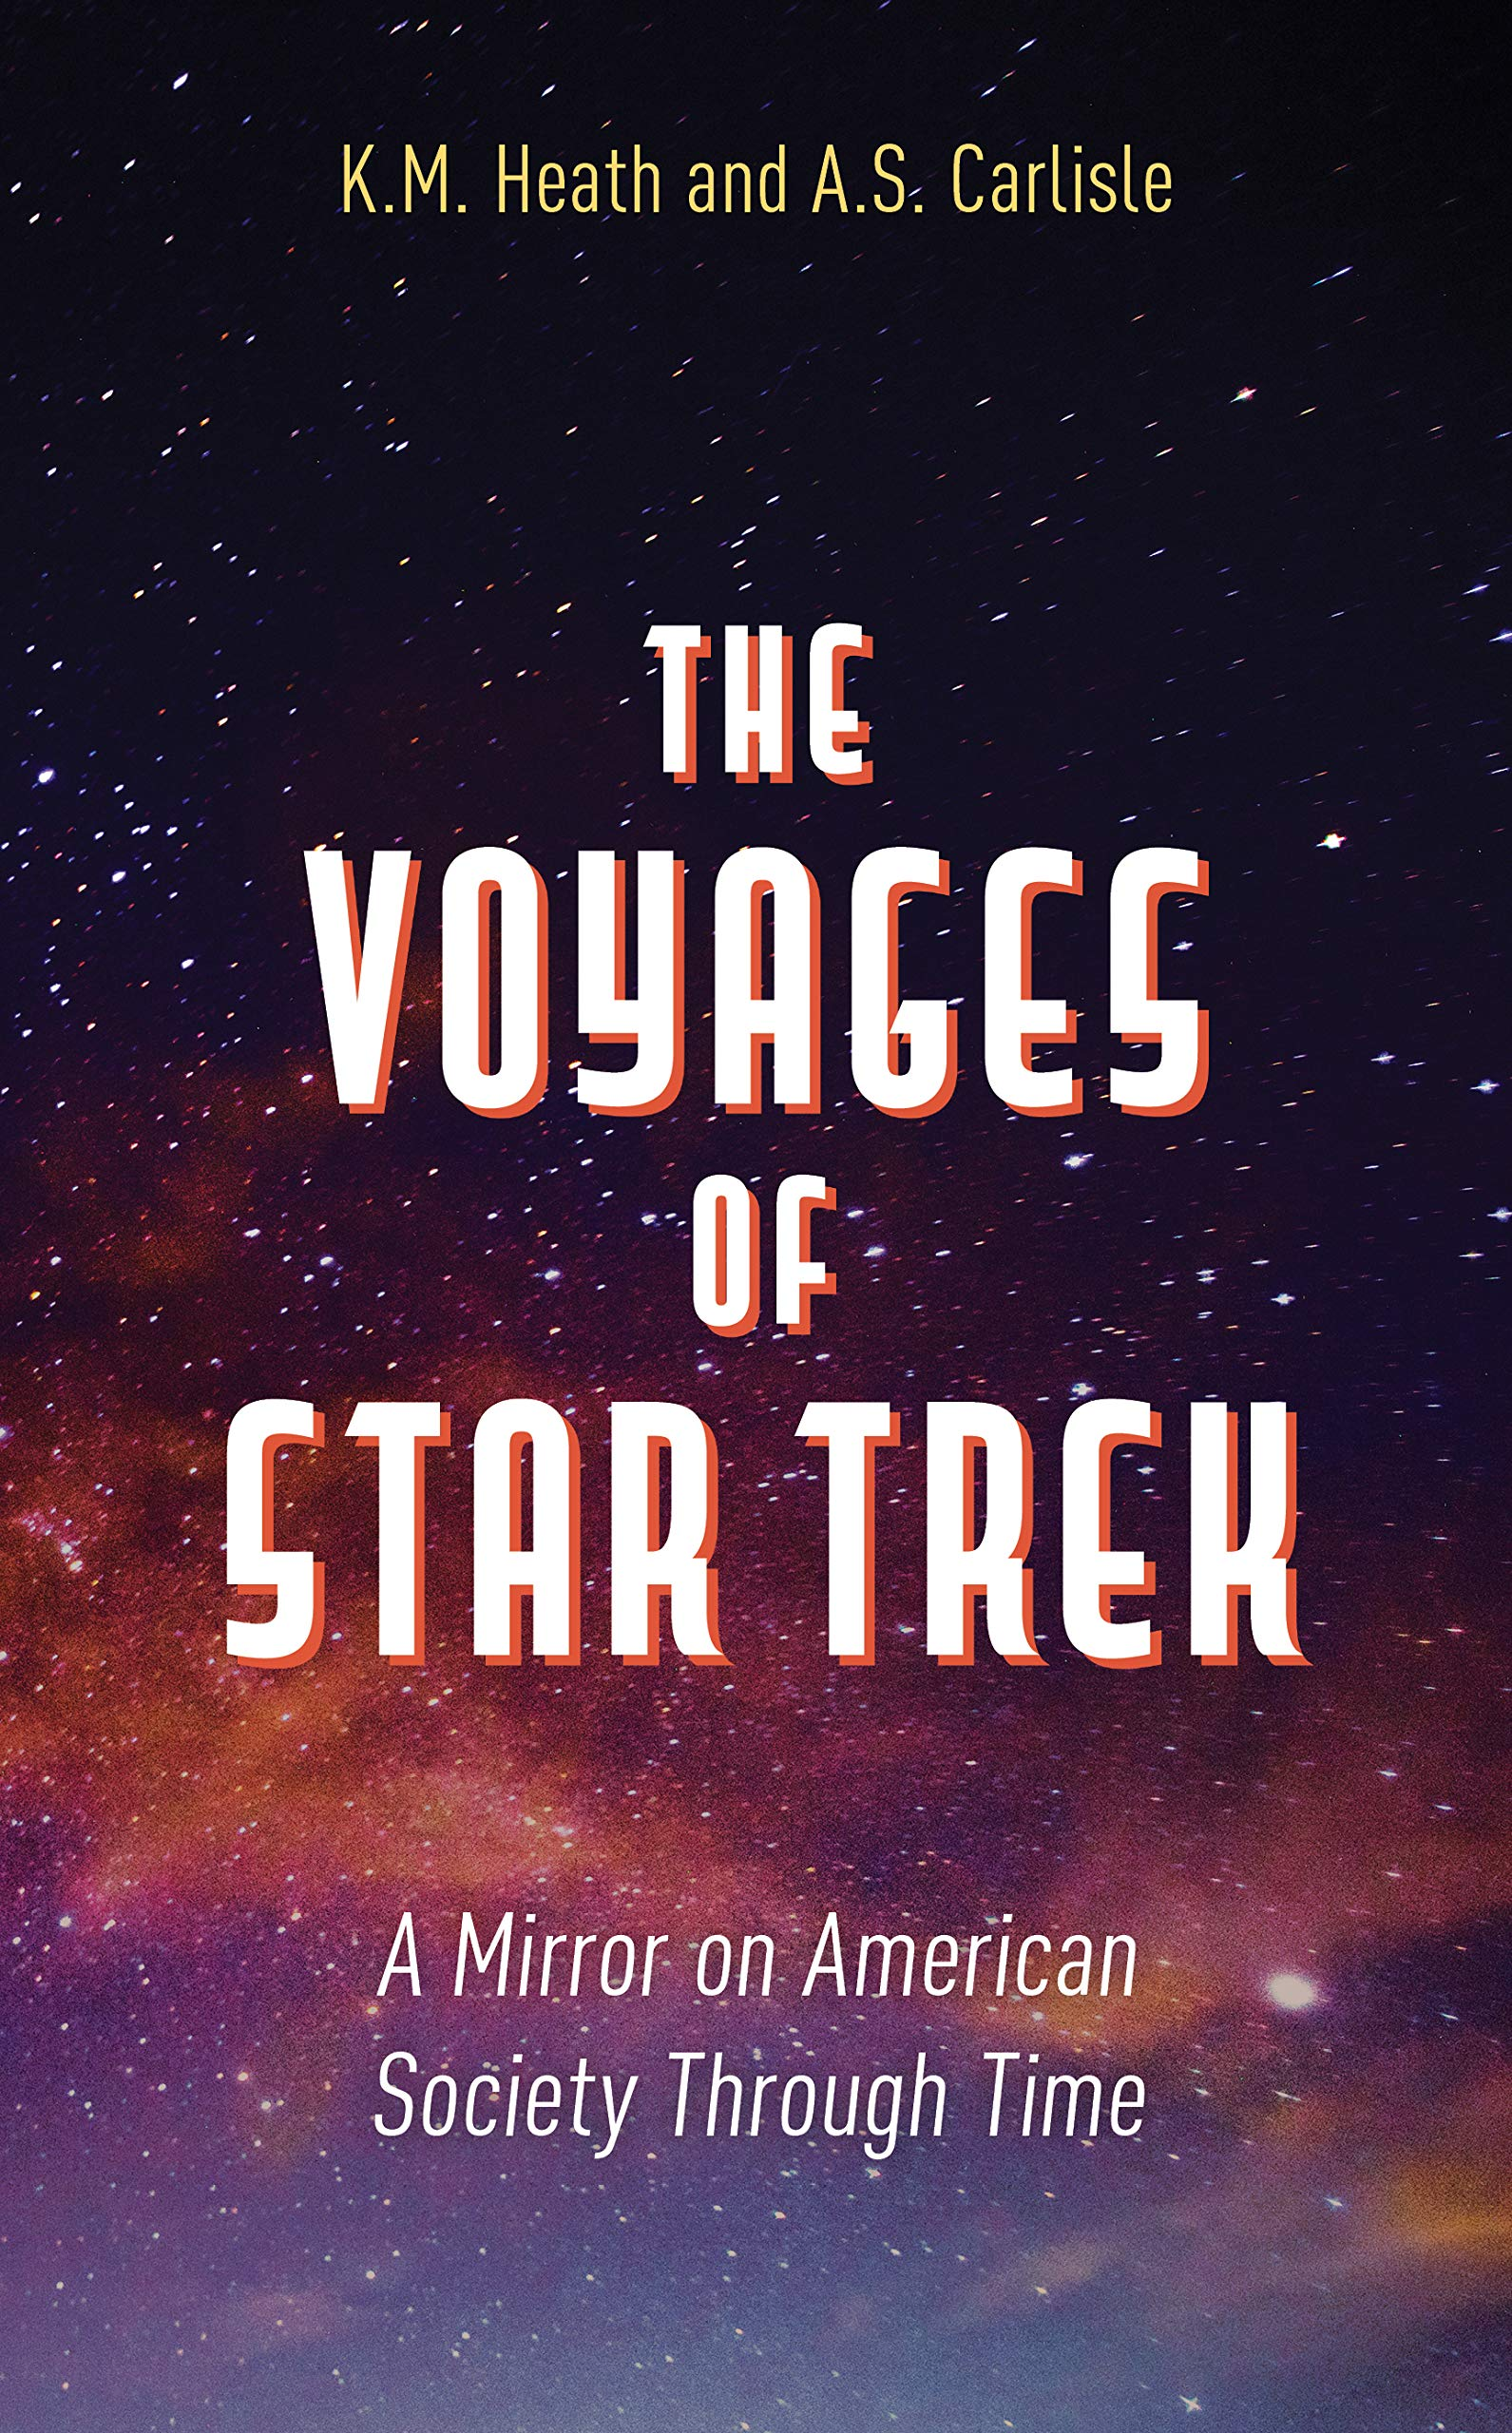 Voyages of Star Trek.jpg